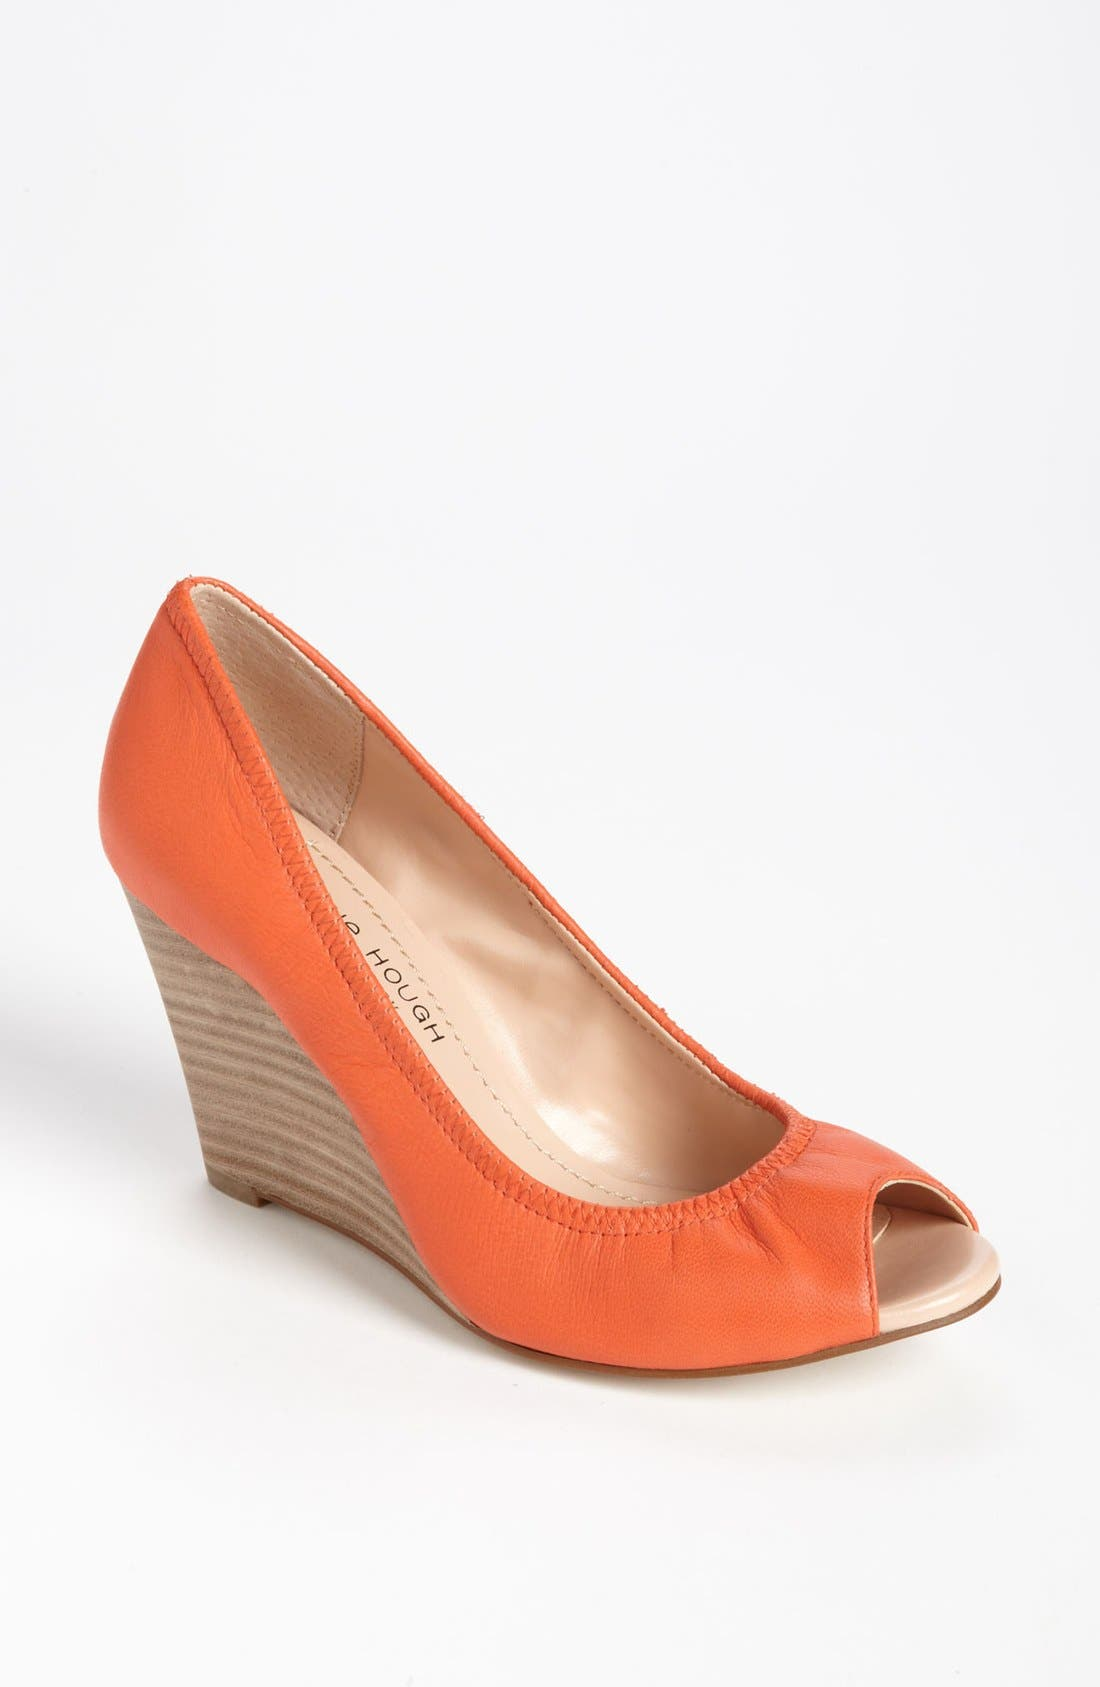 Alternate Image 1 Selected - Julianne Hough for Sole Society 'Carolina' Pump